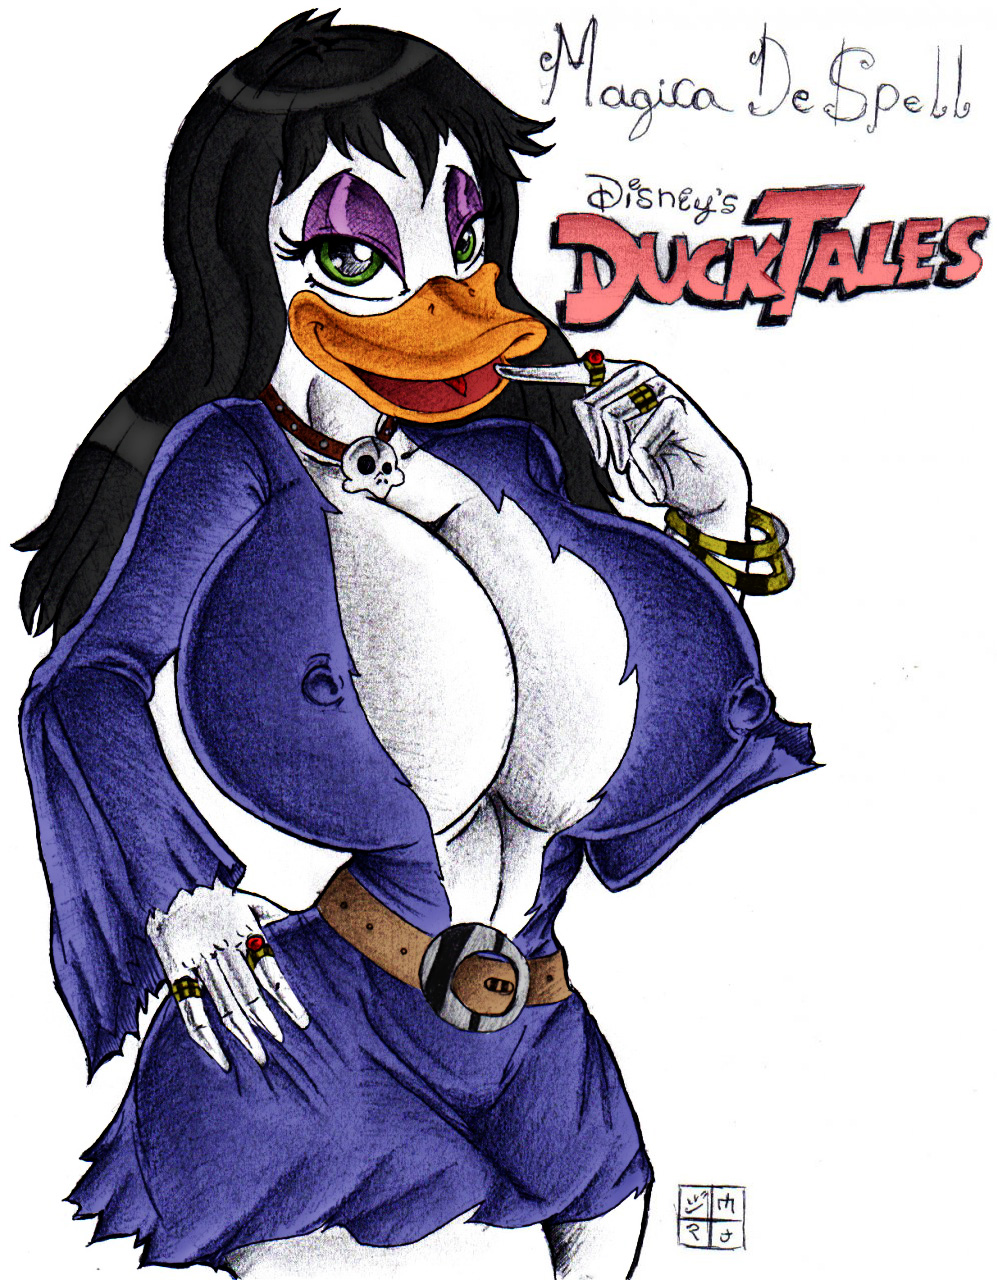 2017 magica de ducktales spell Five night at freddys animated